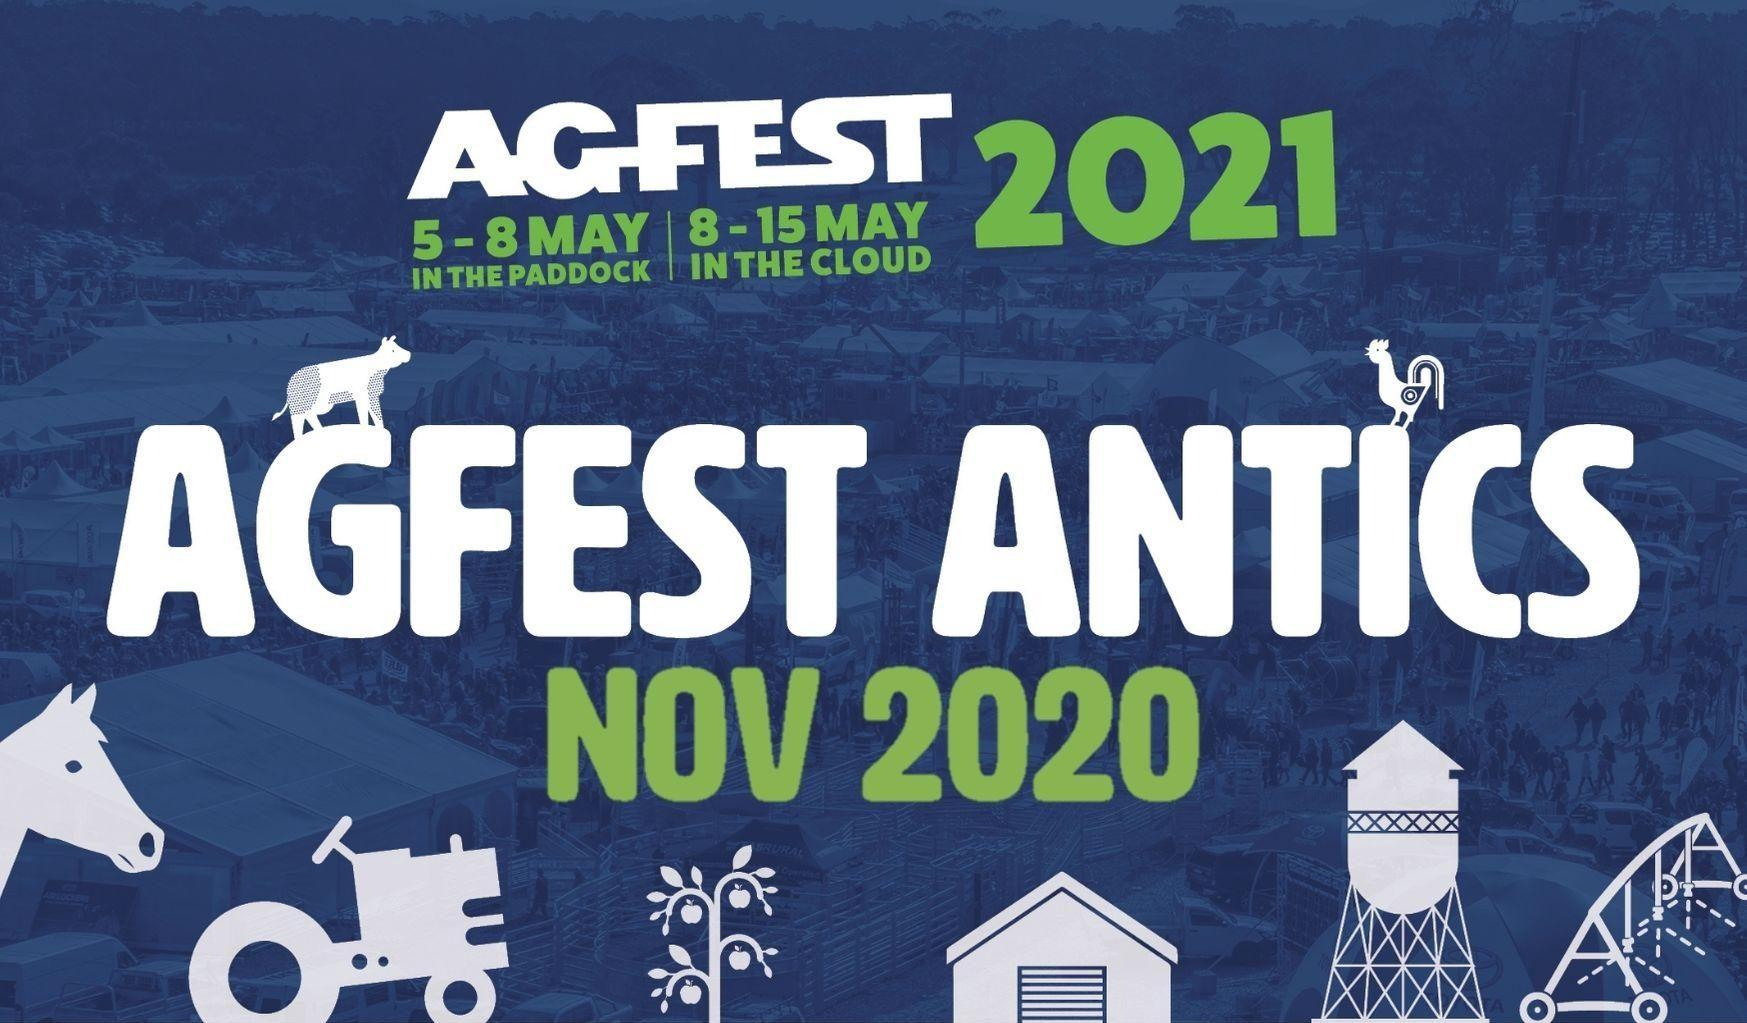 Agfest Antics - November 2020